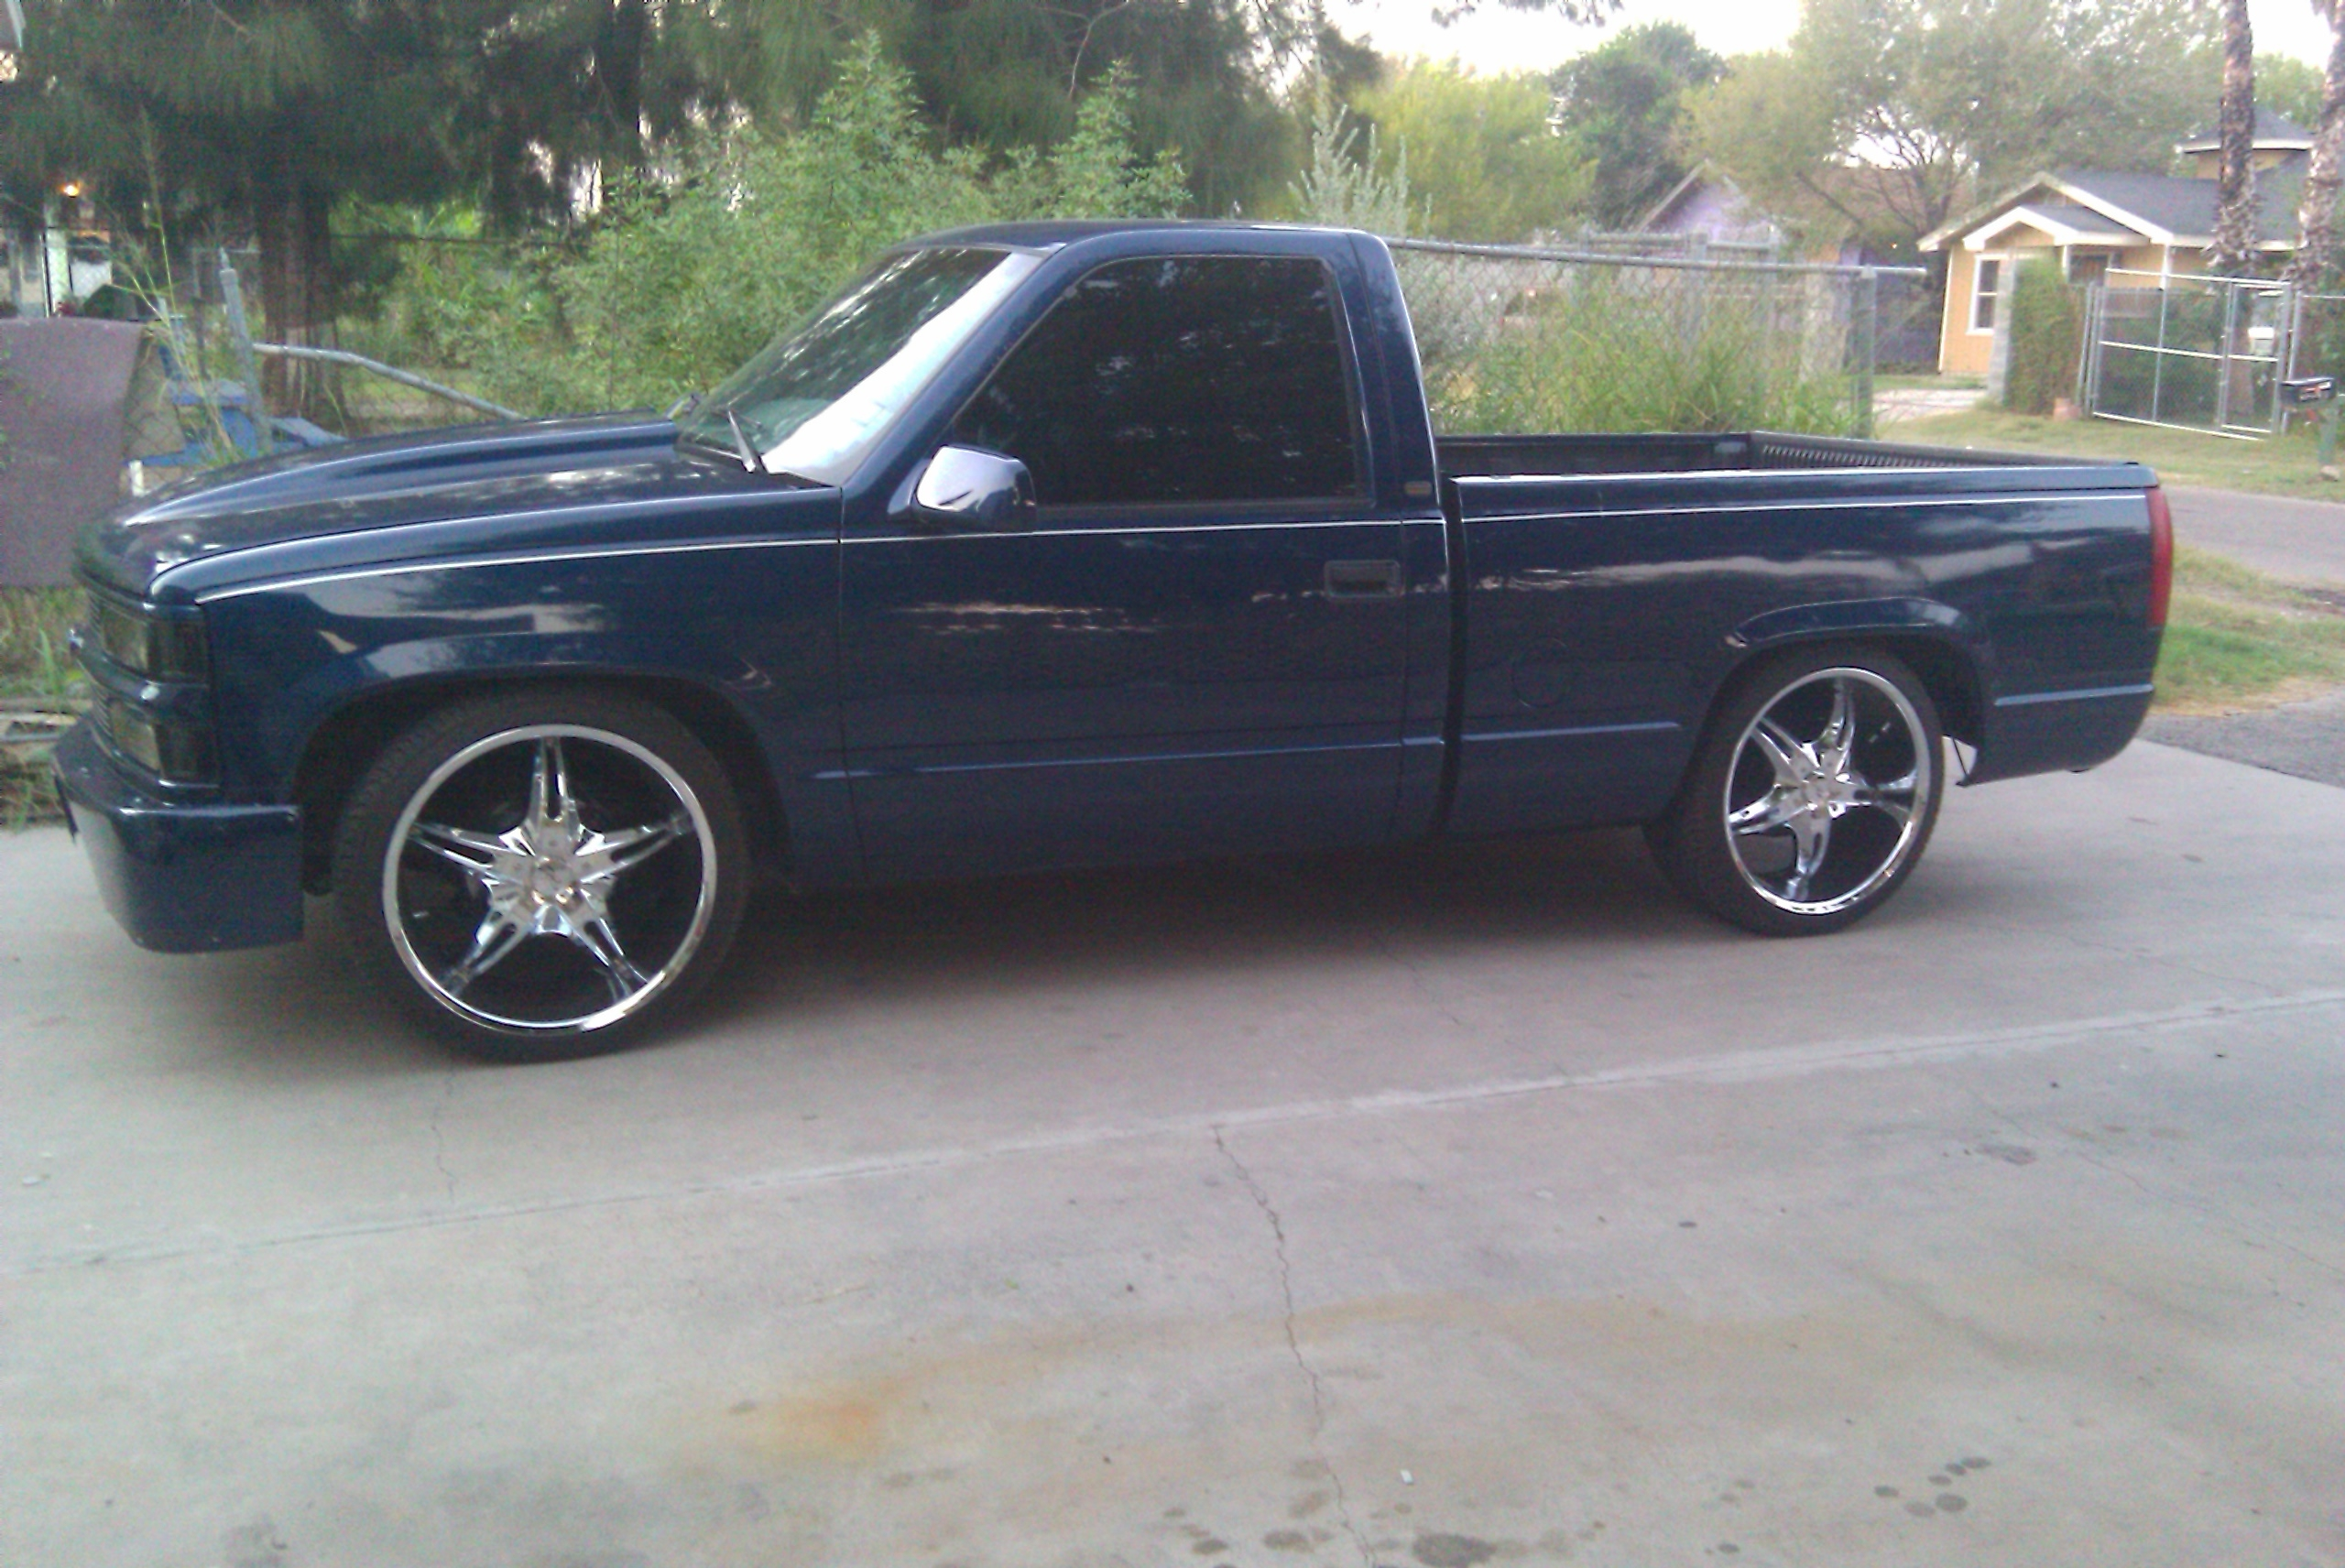 La_SwishaSweet 1998 Chevrolet C/K Pick-Up 14023755